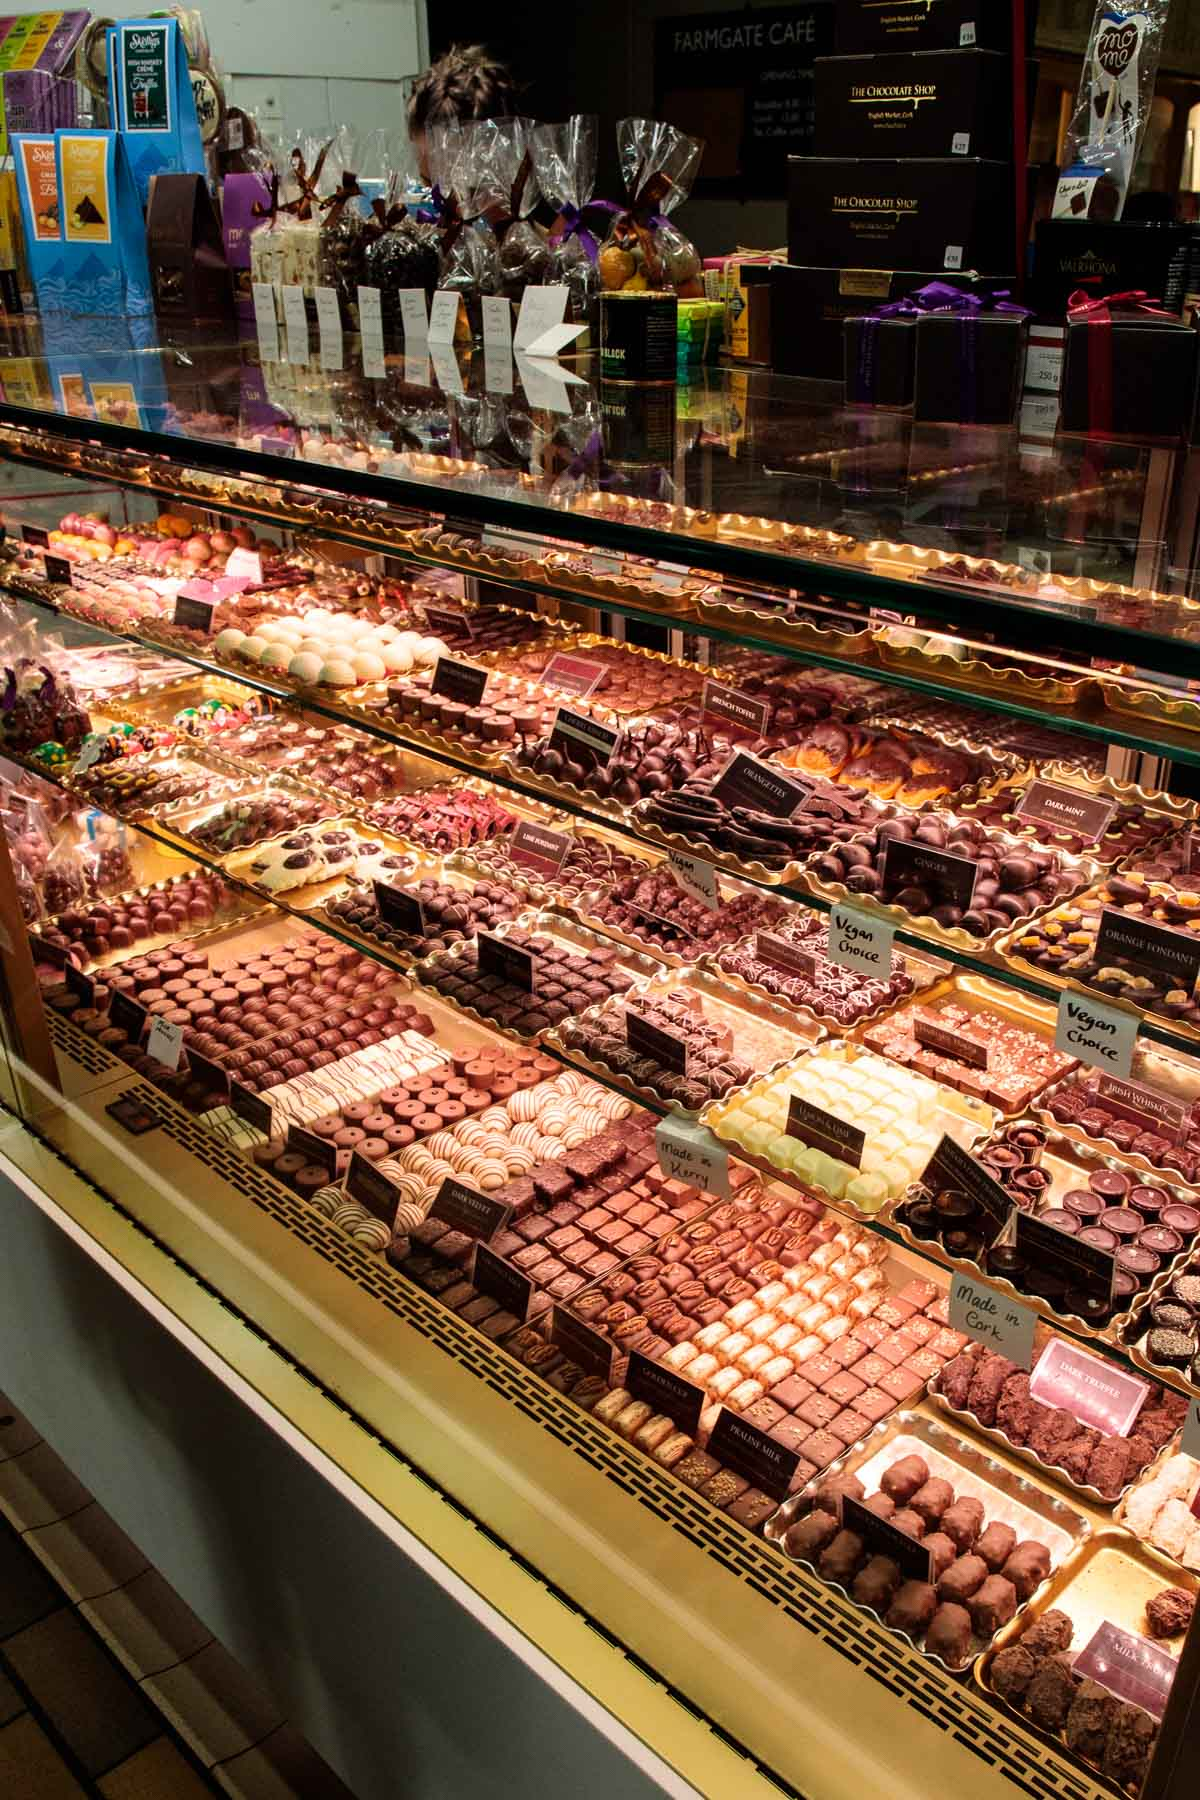 Photo of a nearly infinite display of hand made fine chocolates at the English Market in Cork, Ireland.